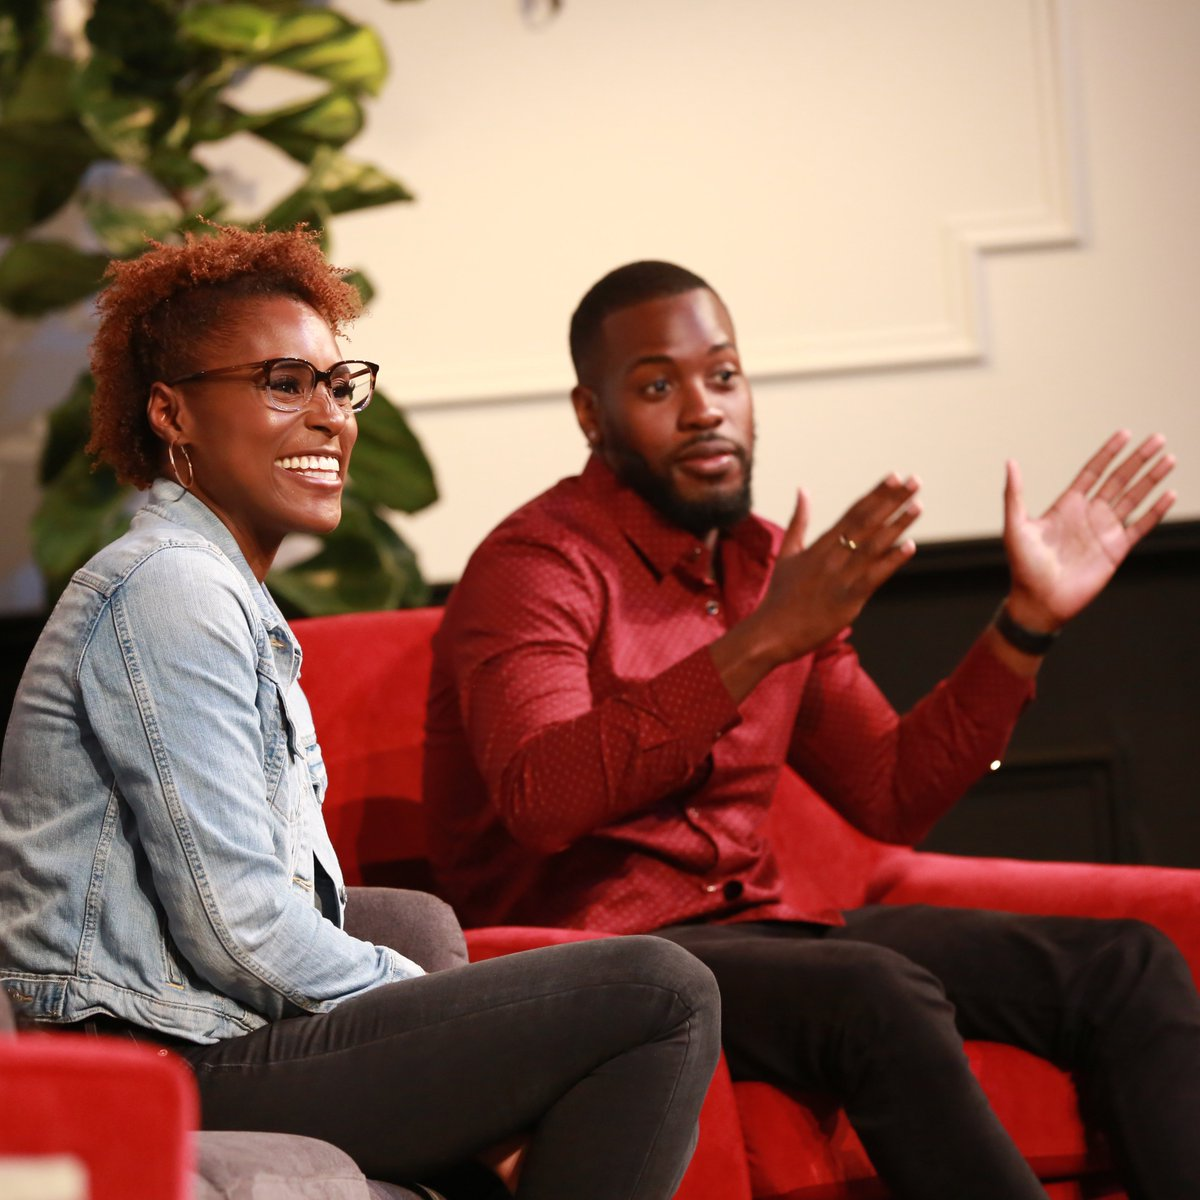 Star-struck from the incredible speakers at #YouTubeBlack Creator Summit! Thank you @IssaRae and @common 💥 https://t.co/IMjigBhX6i